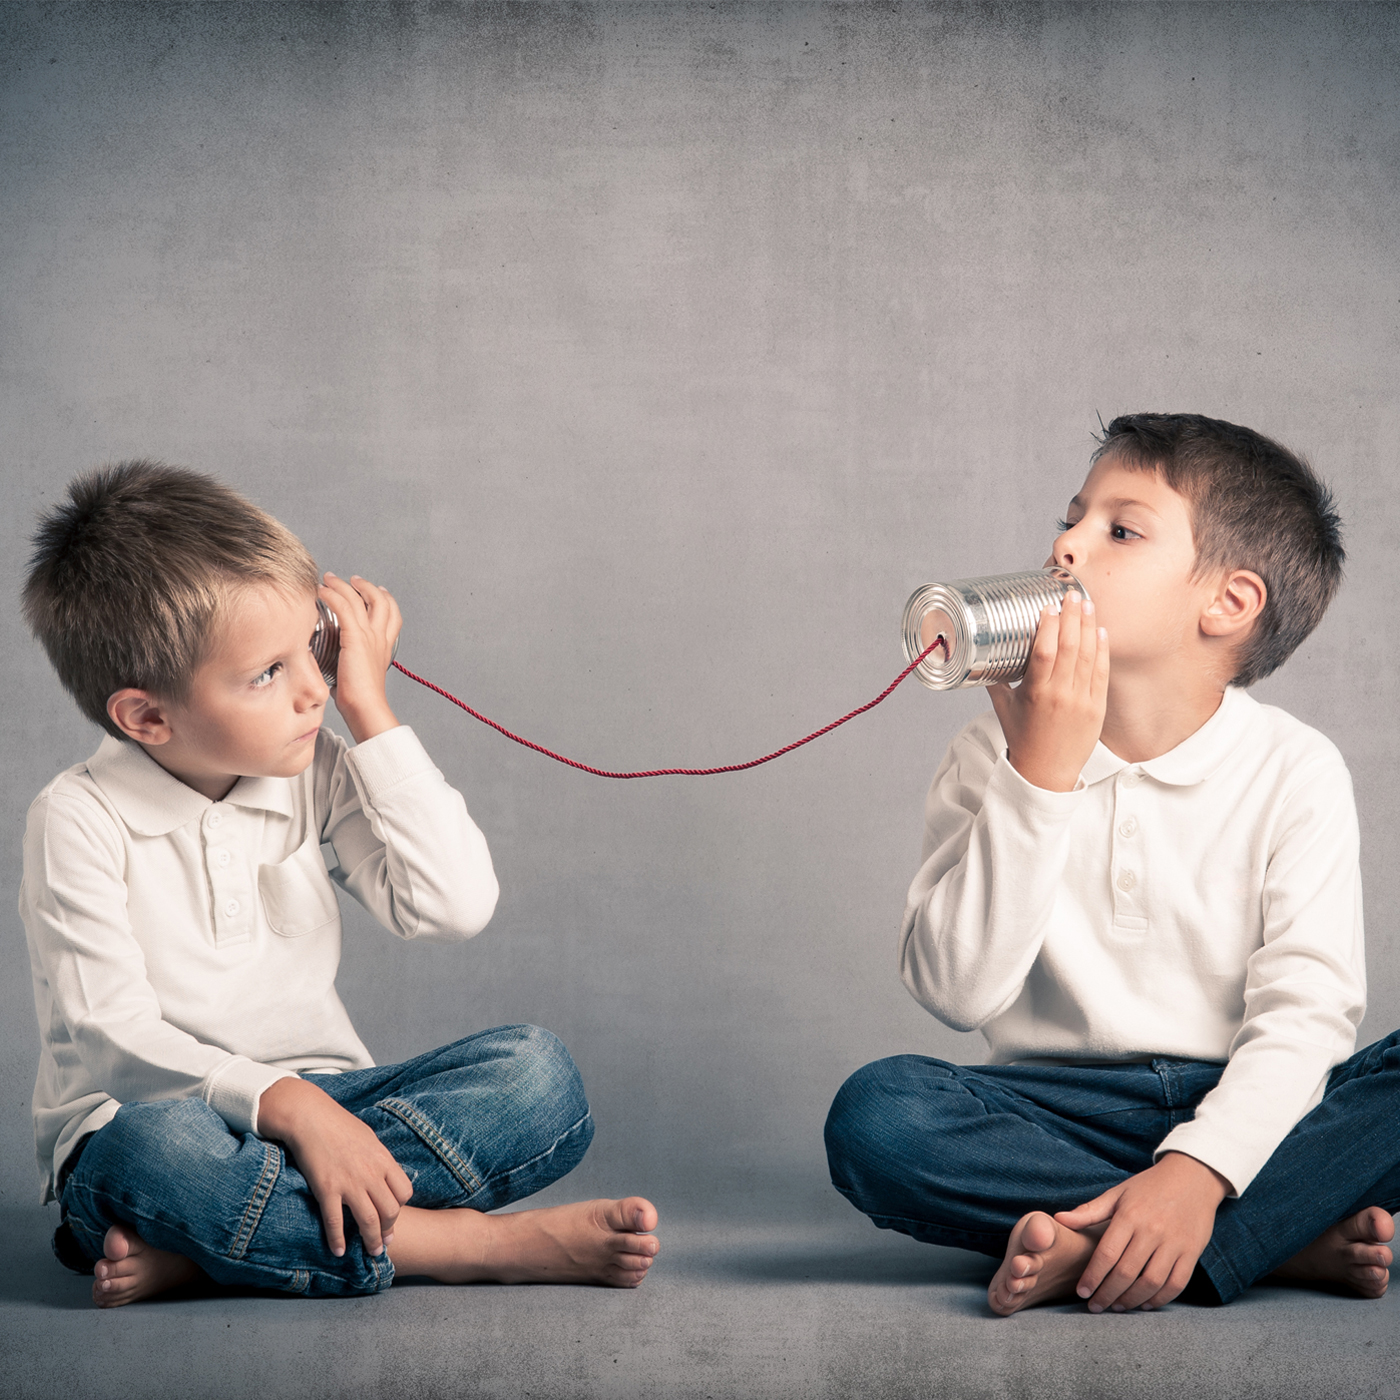 two-brothers-communicating-with-homemade-string-and-can-telephone